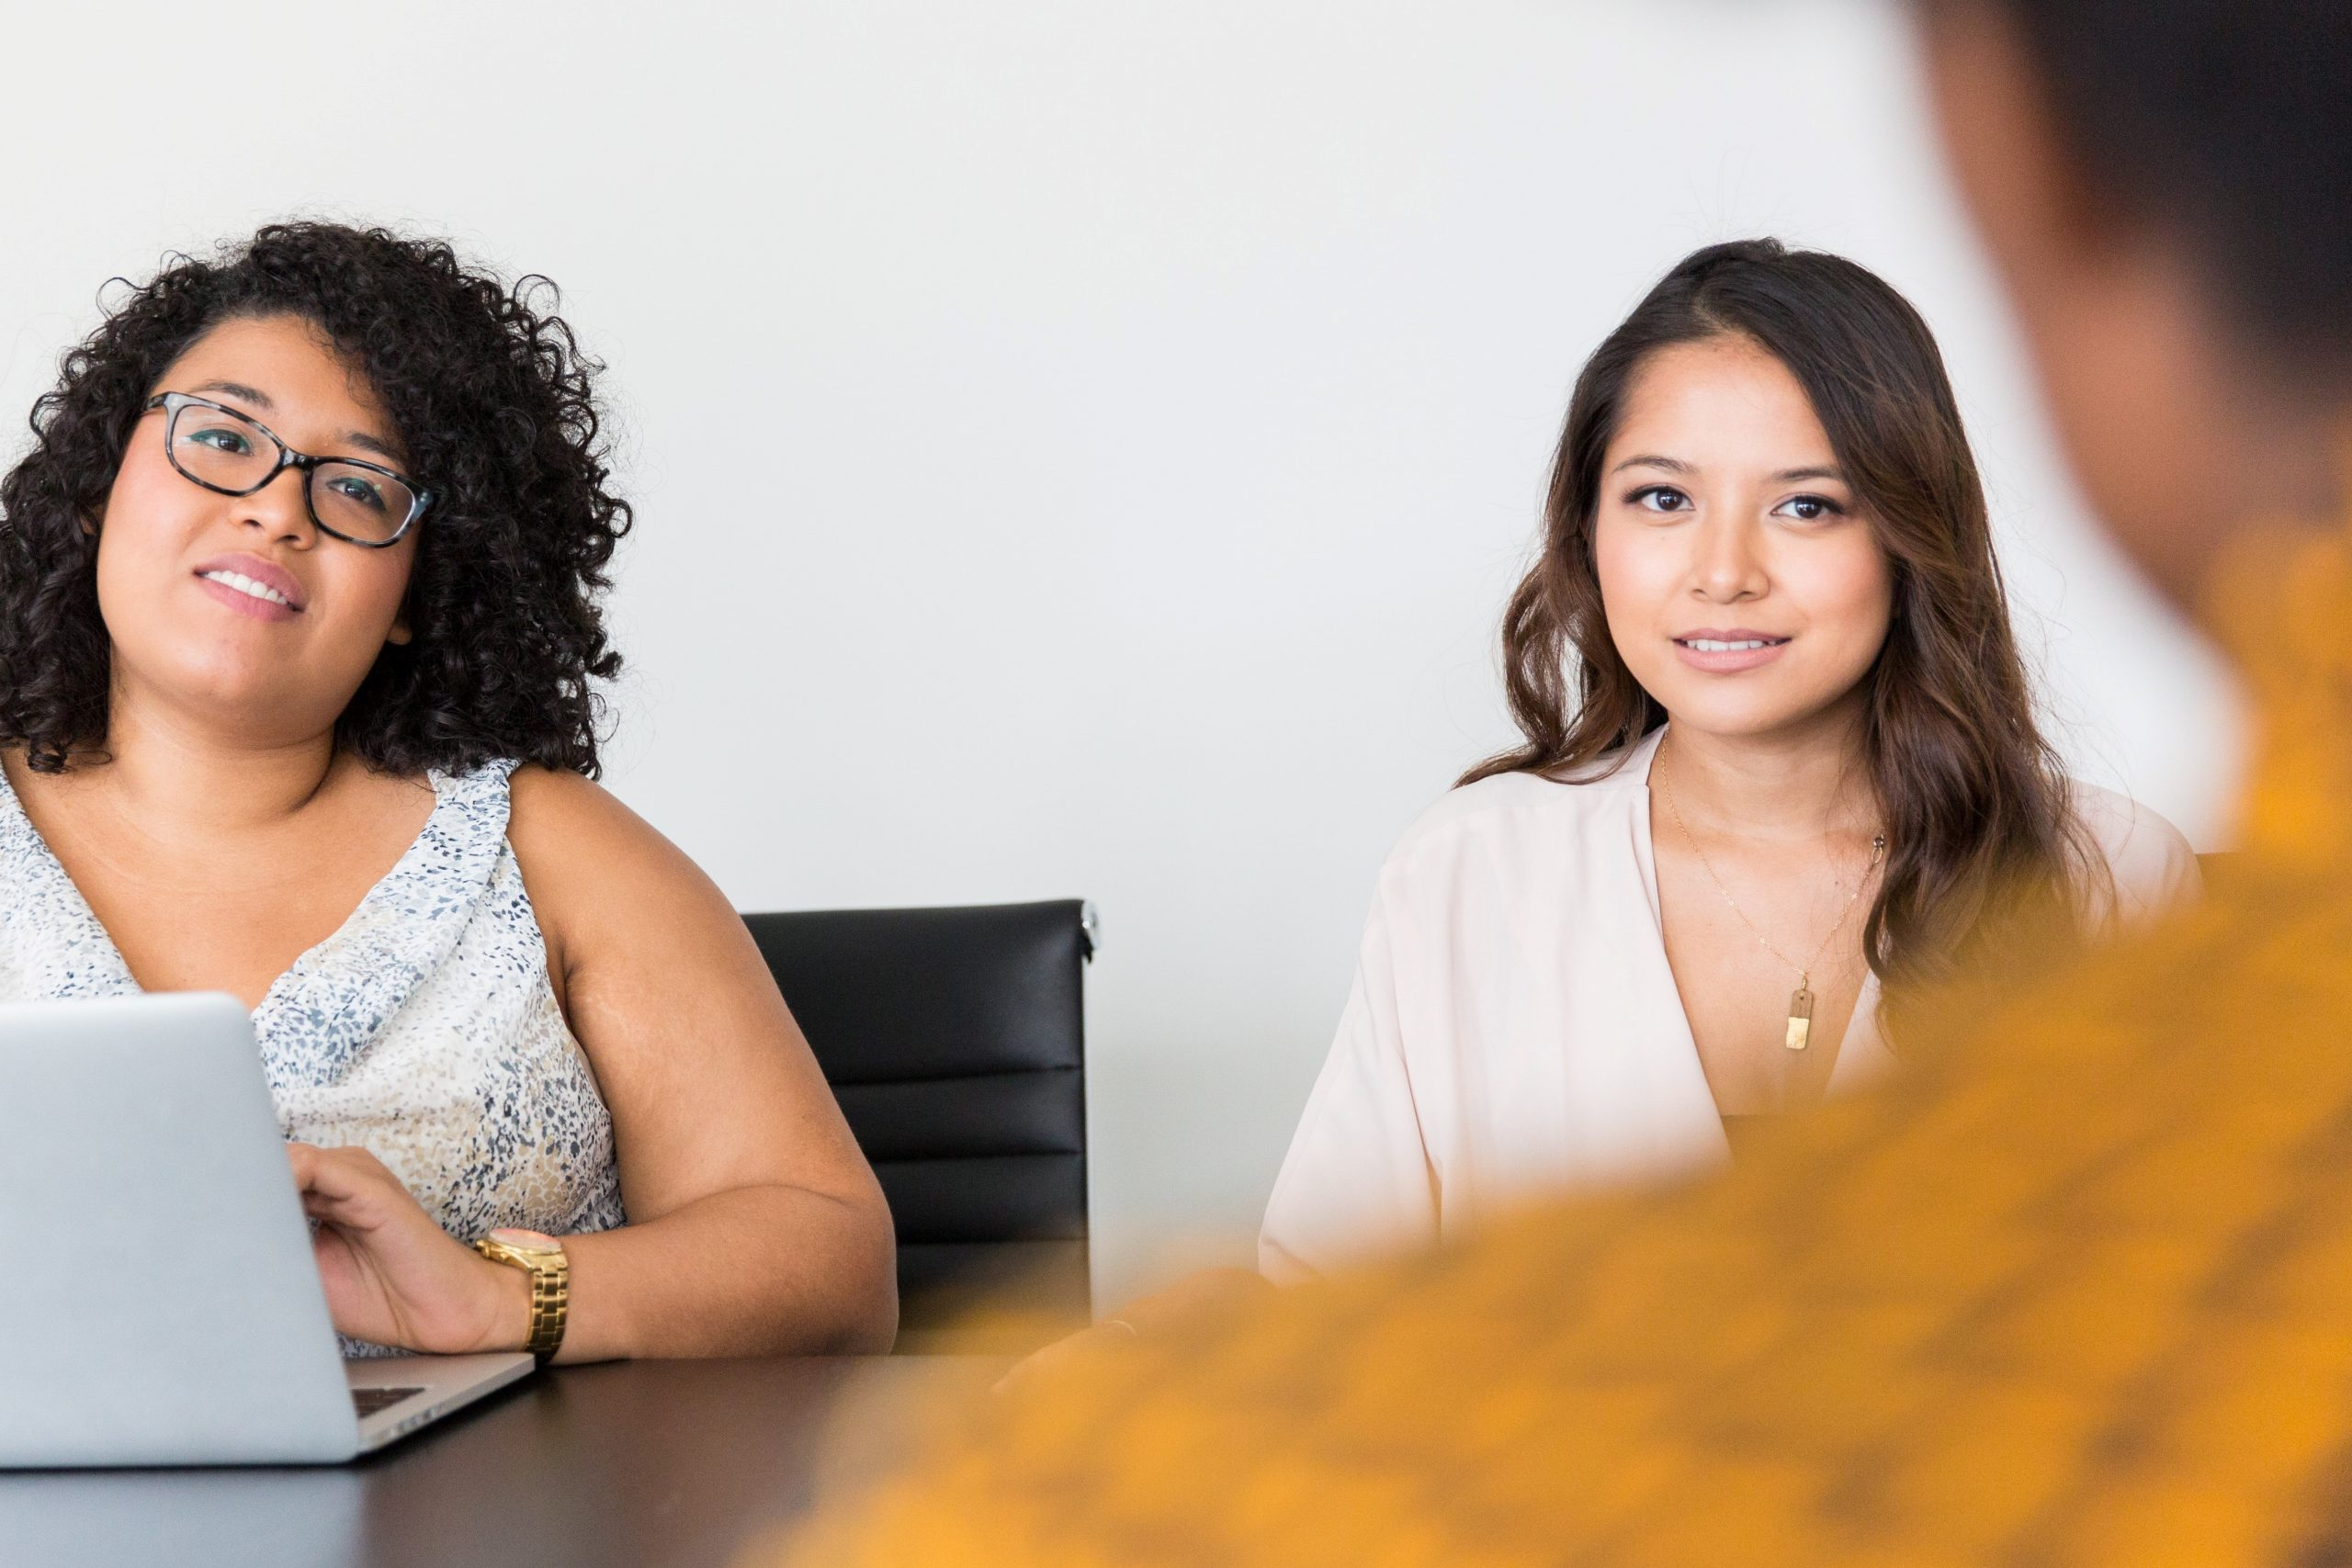 You Got a Second Interview!! 5 Do's & Don'ts for Nailing It